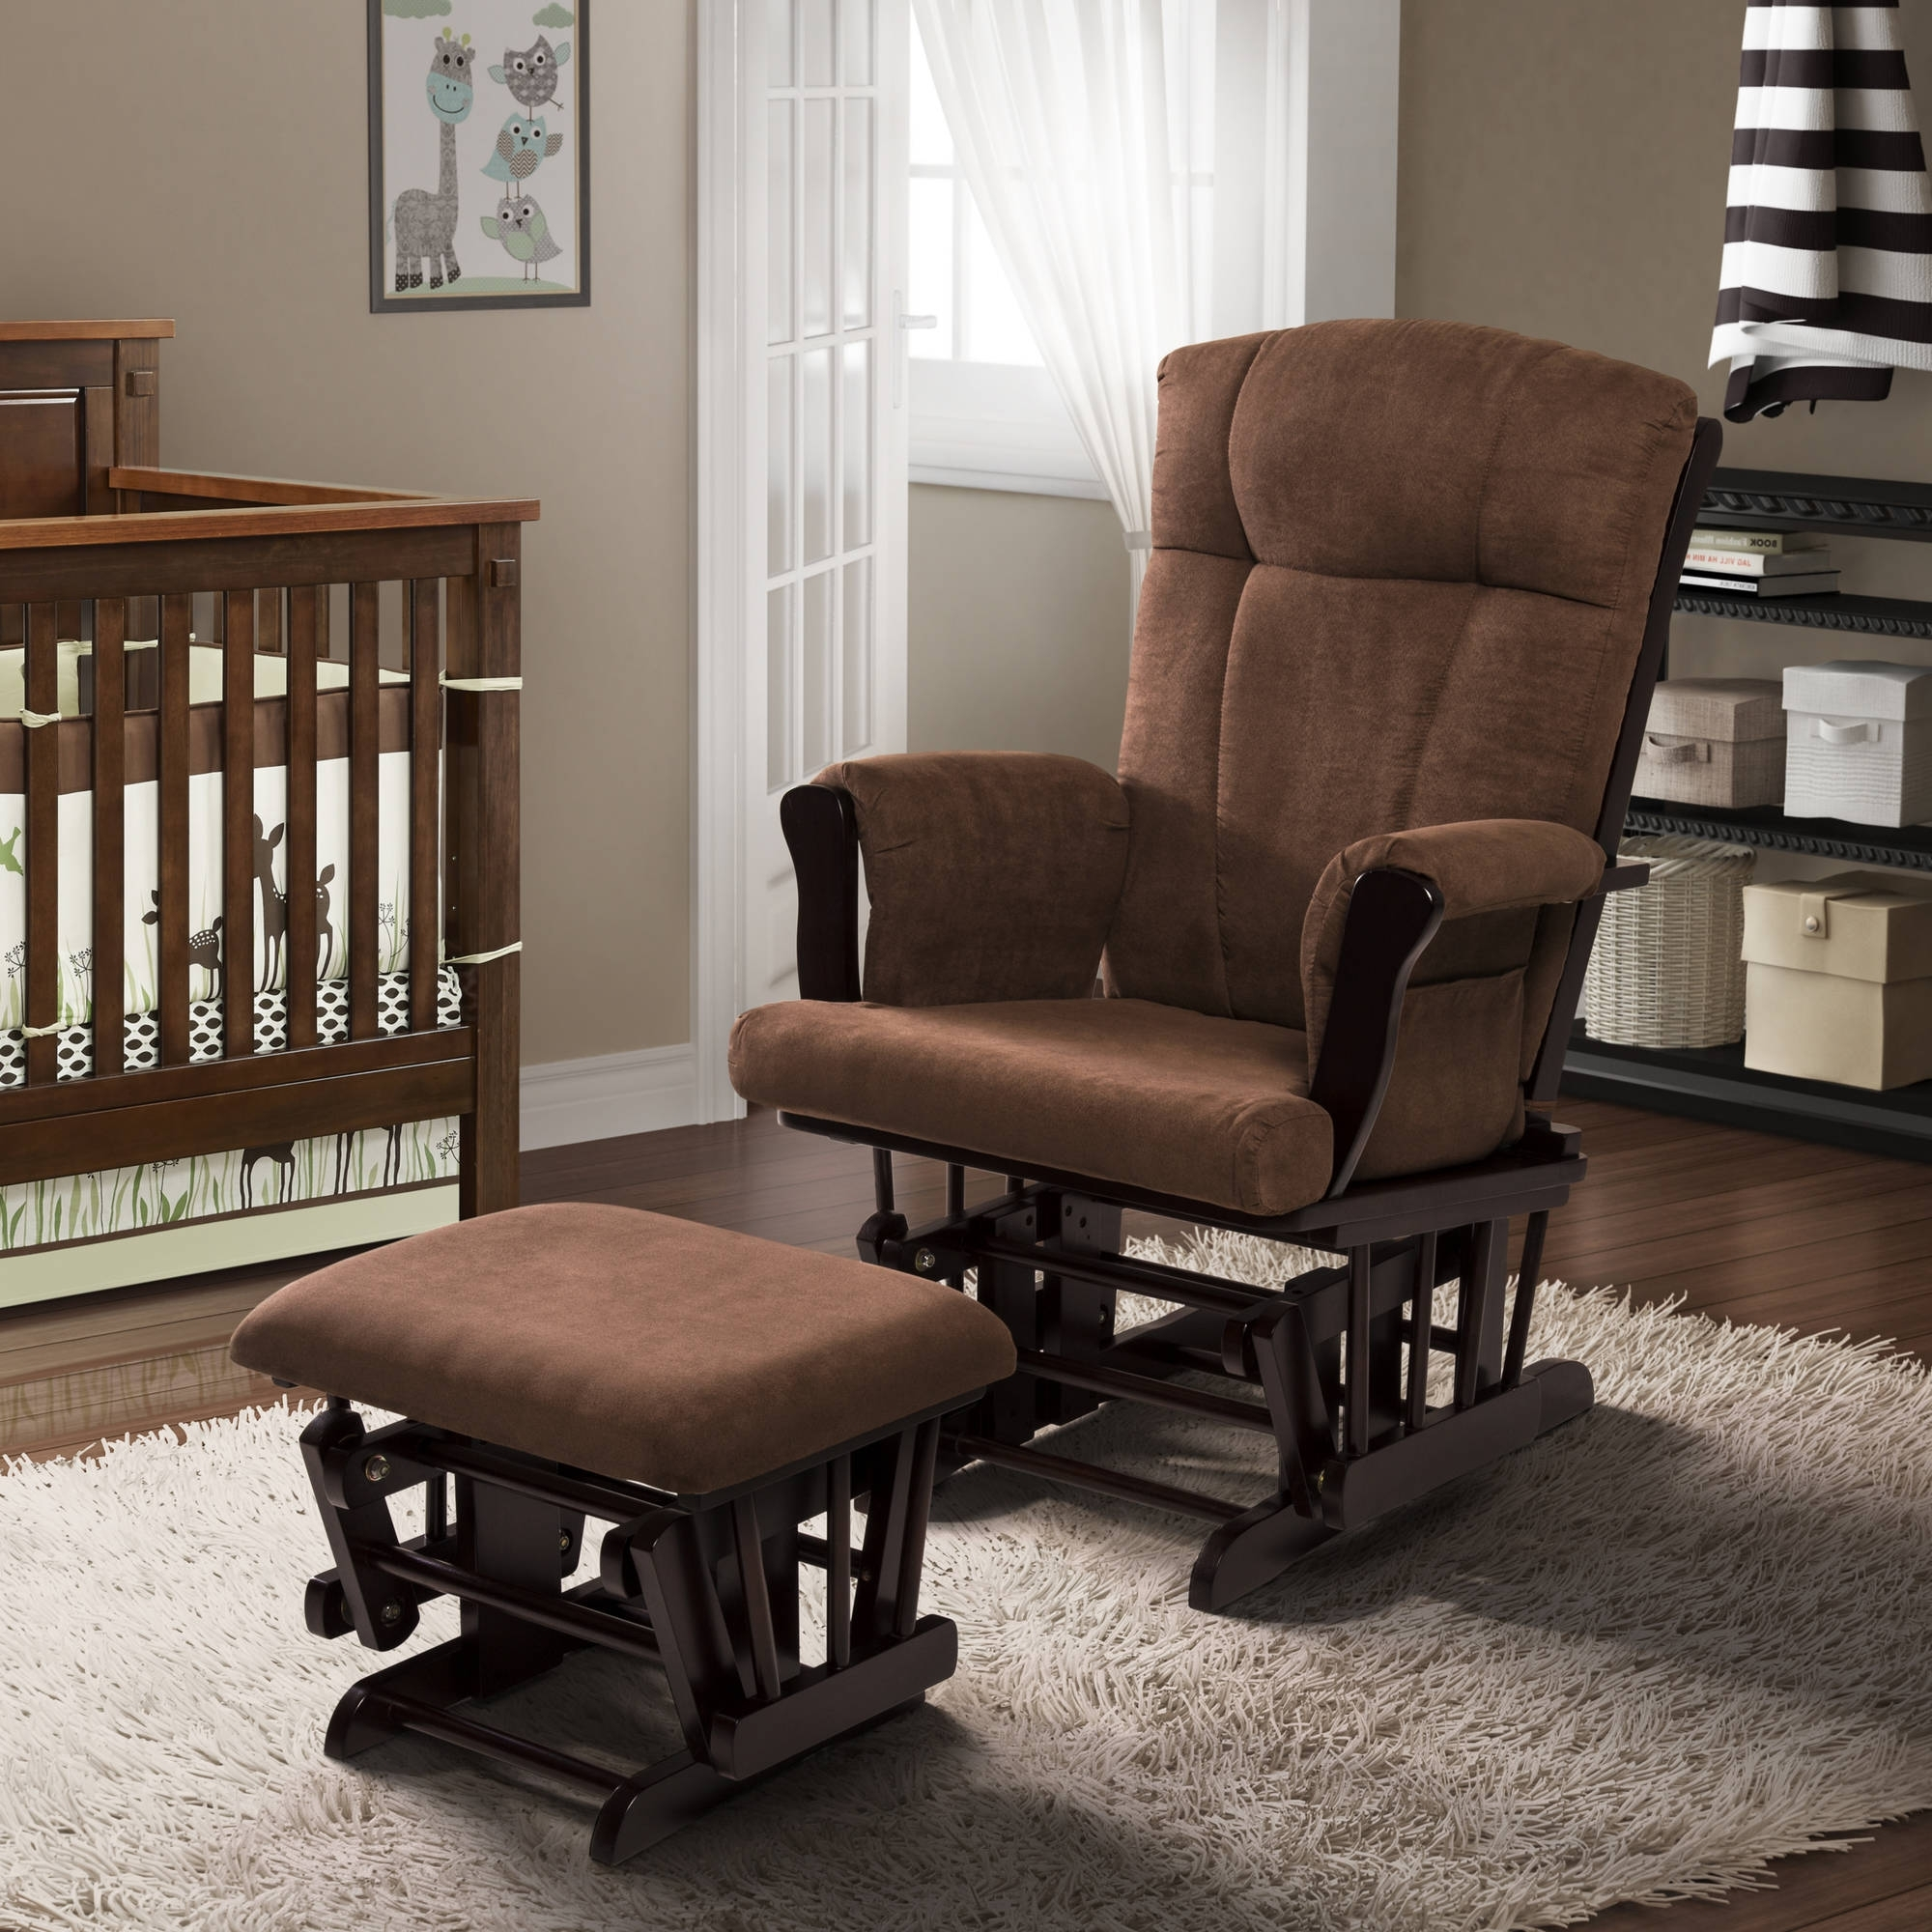 Well Known Rocking Chairs At Walmart Pertaining To Baby Relax Glider Rocker And Ottoman Espresso With Chocolate (View 9 of 15)